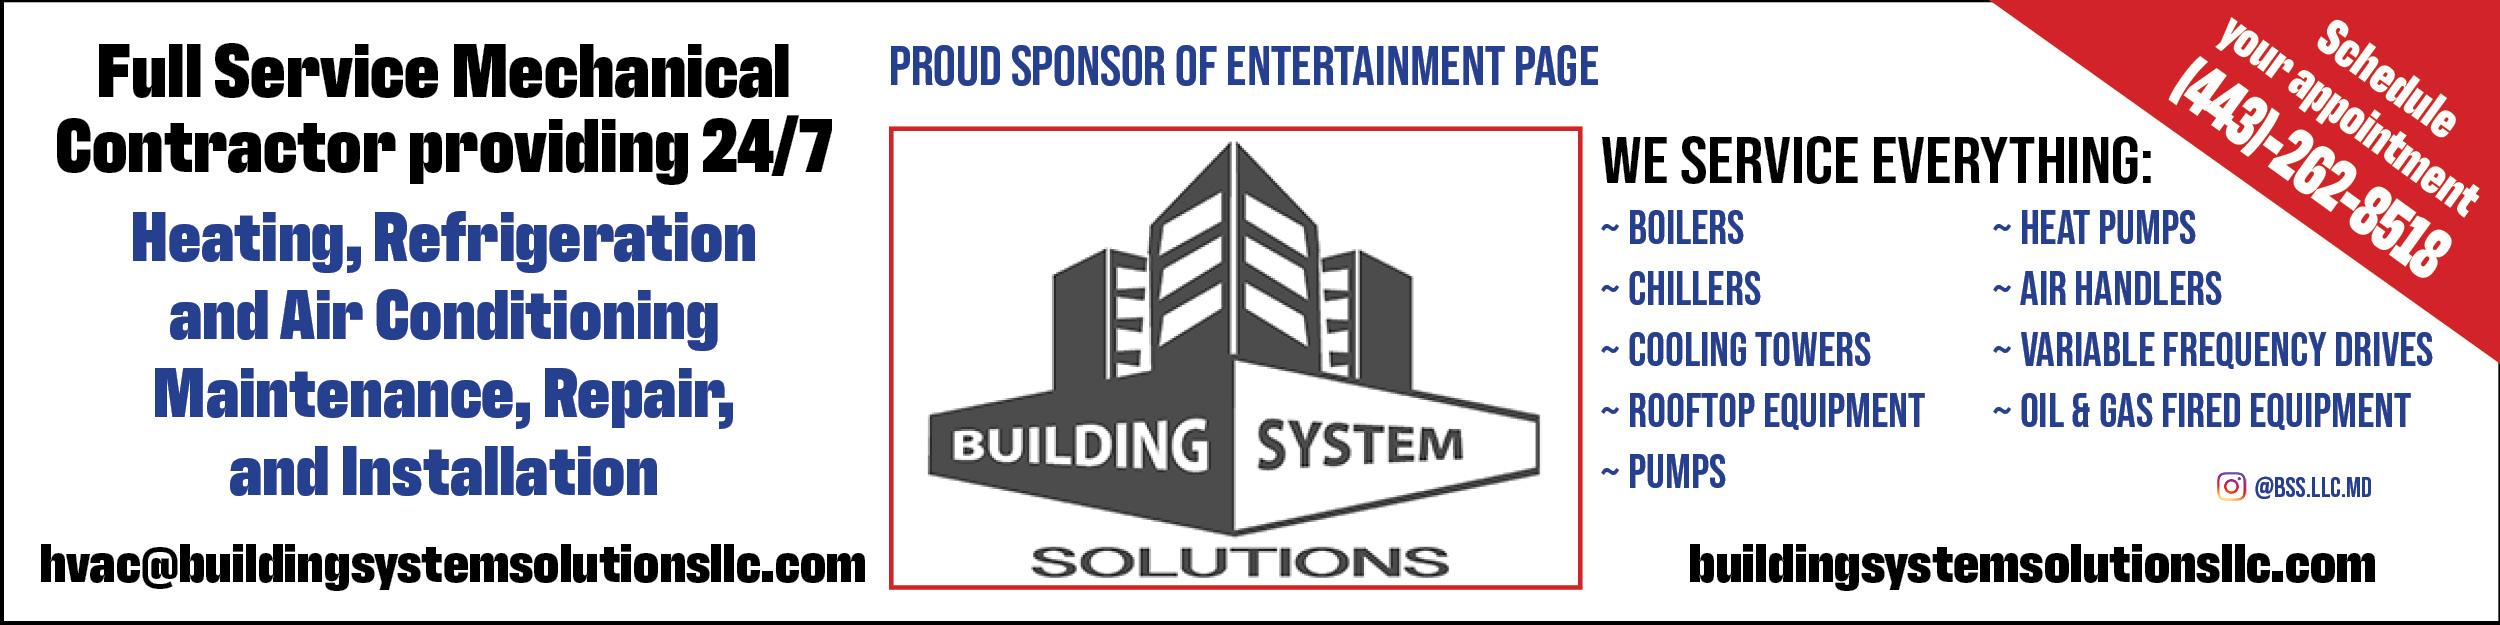 900x225_Building System Solutions